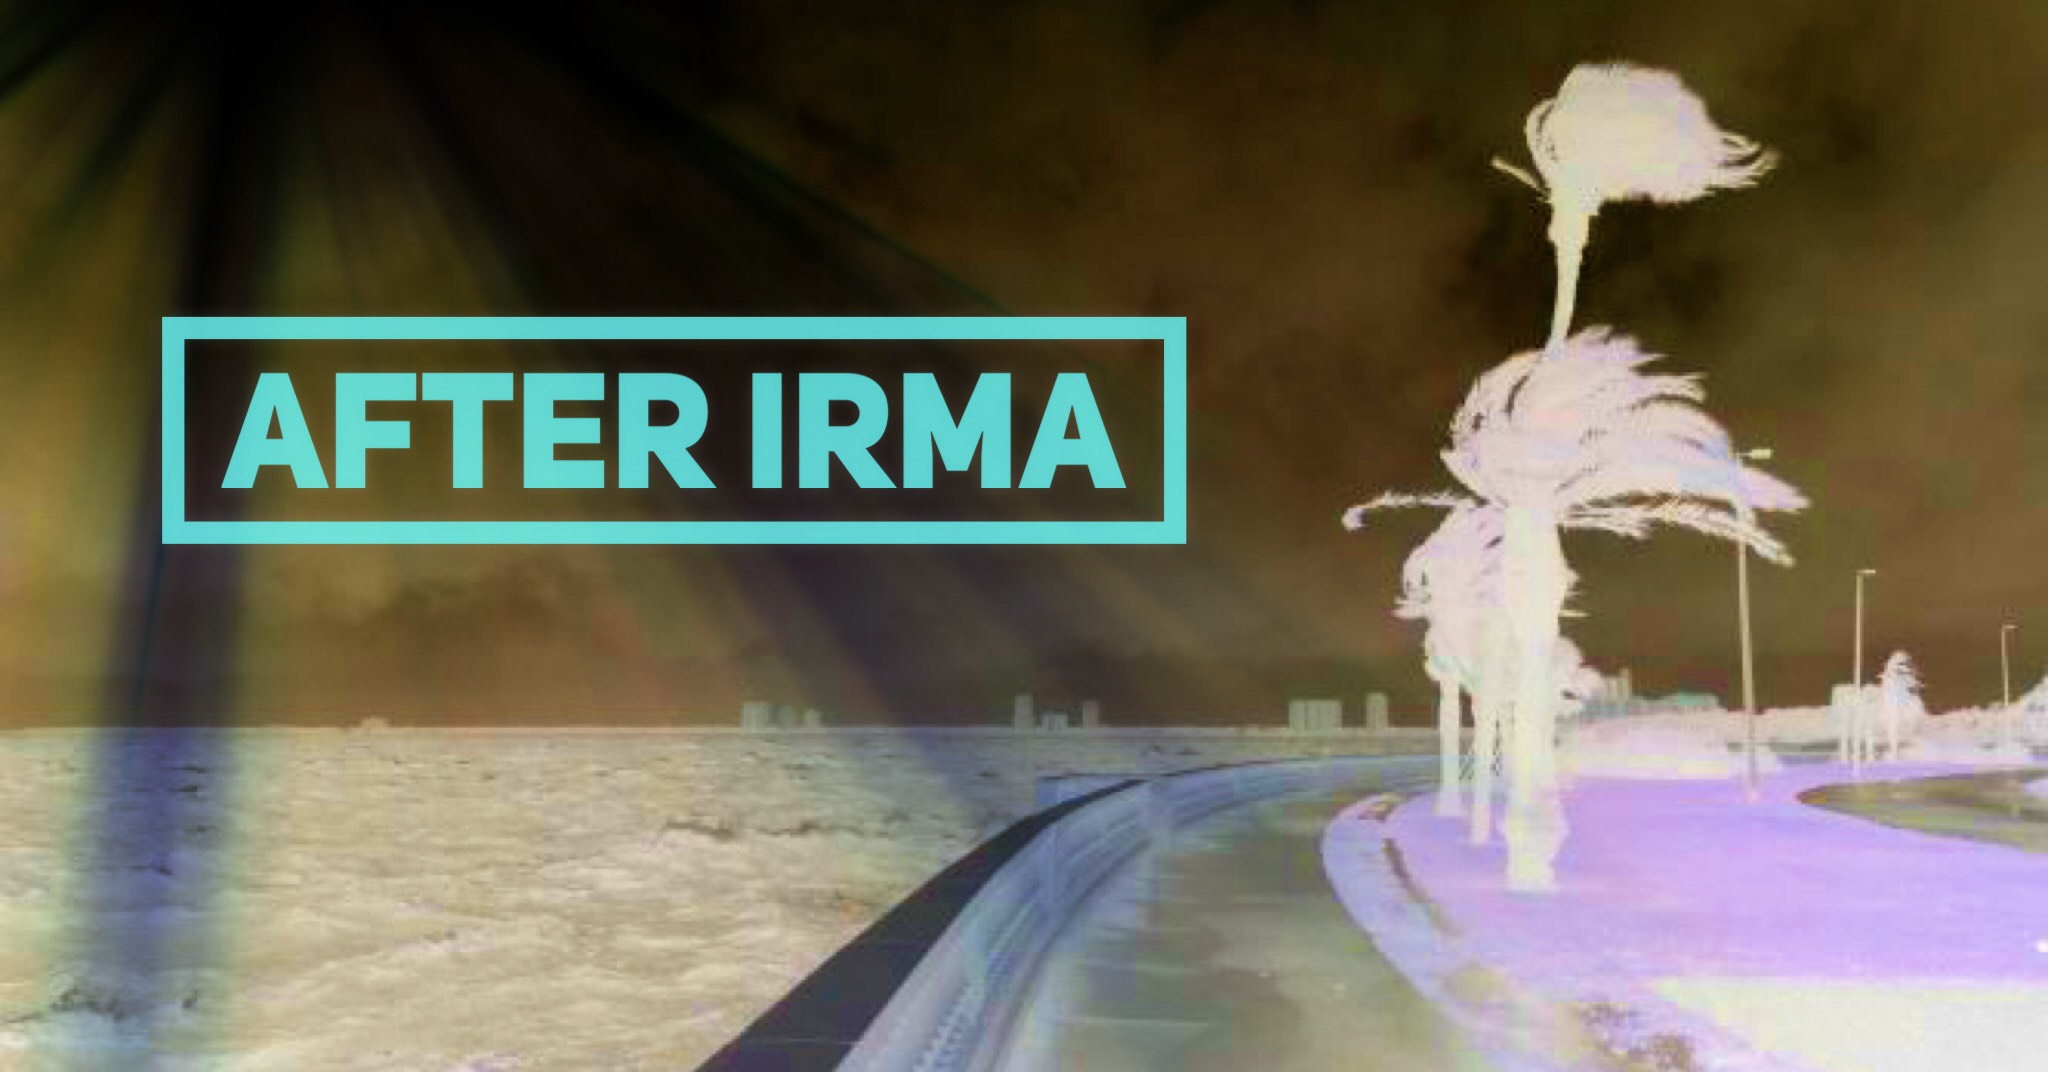 After Irma 002